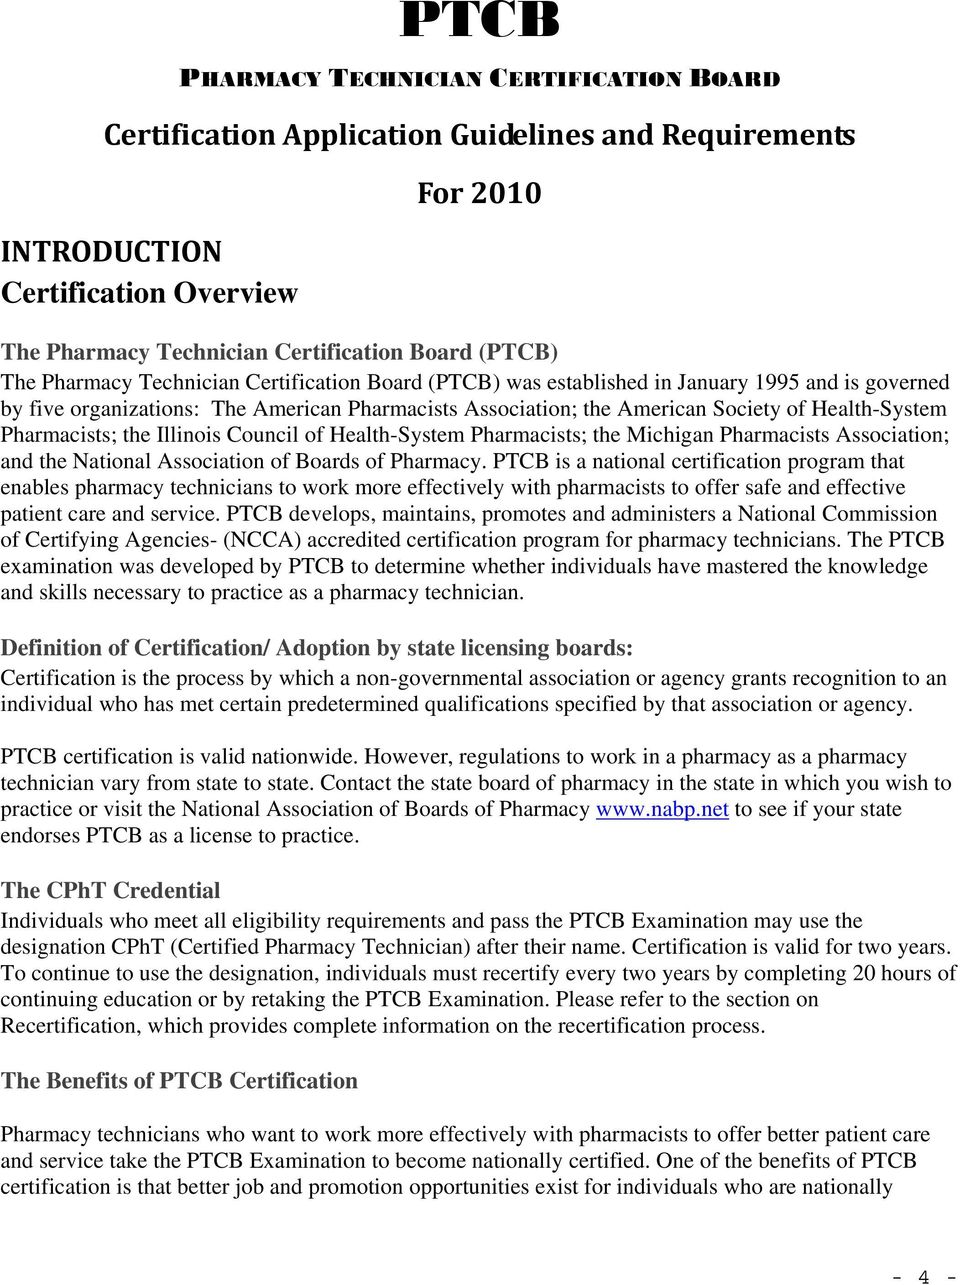 Ptcb Pharmacy Technician Certification Board Board Of Governors